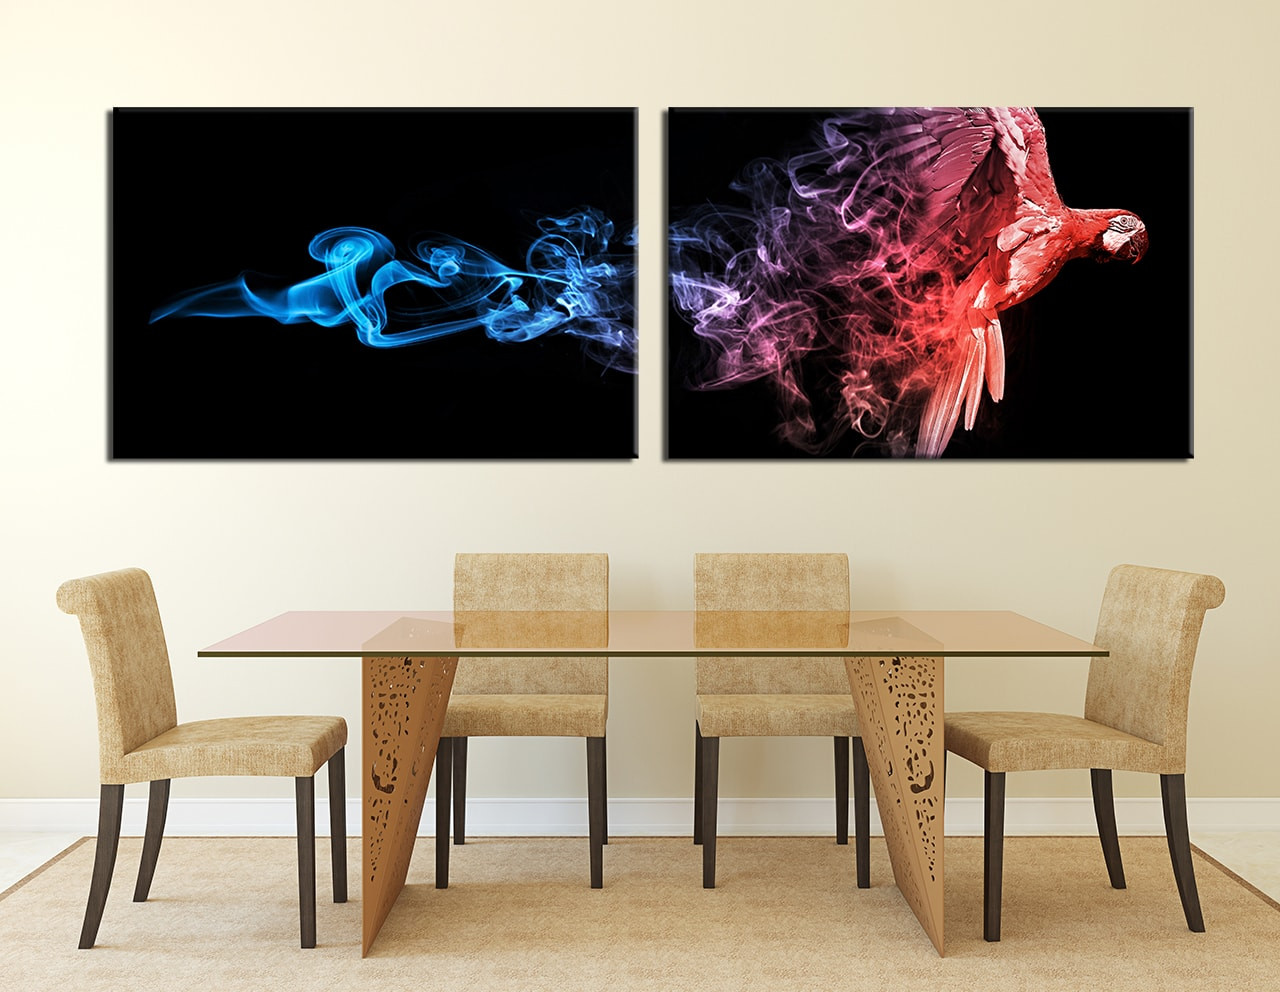 Dining Room Wall Decor, 2 Piece Wall Art, Parrot Multi Panel Art, Forest